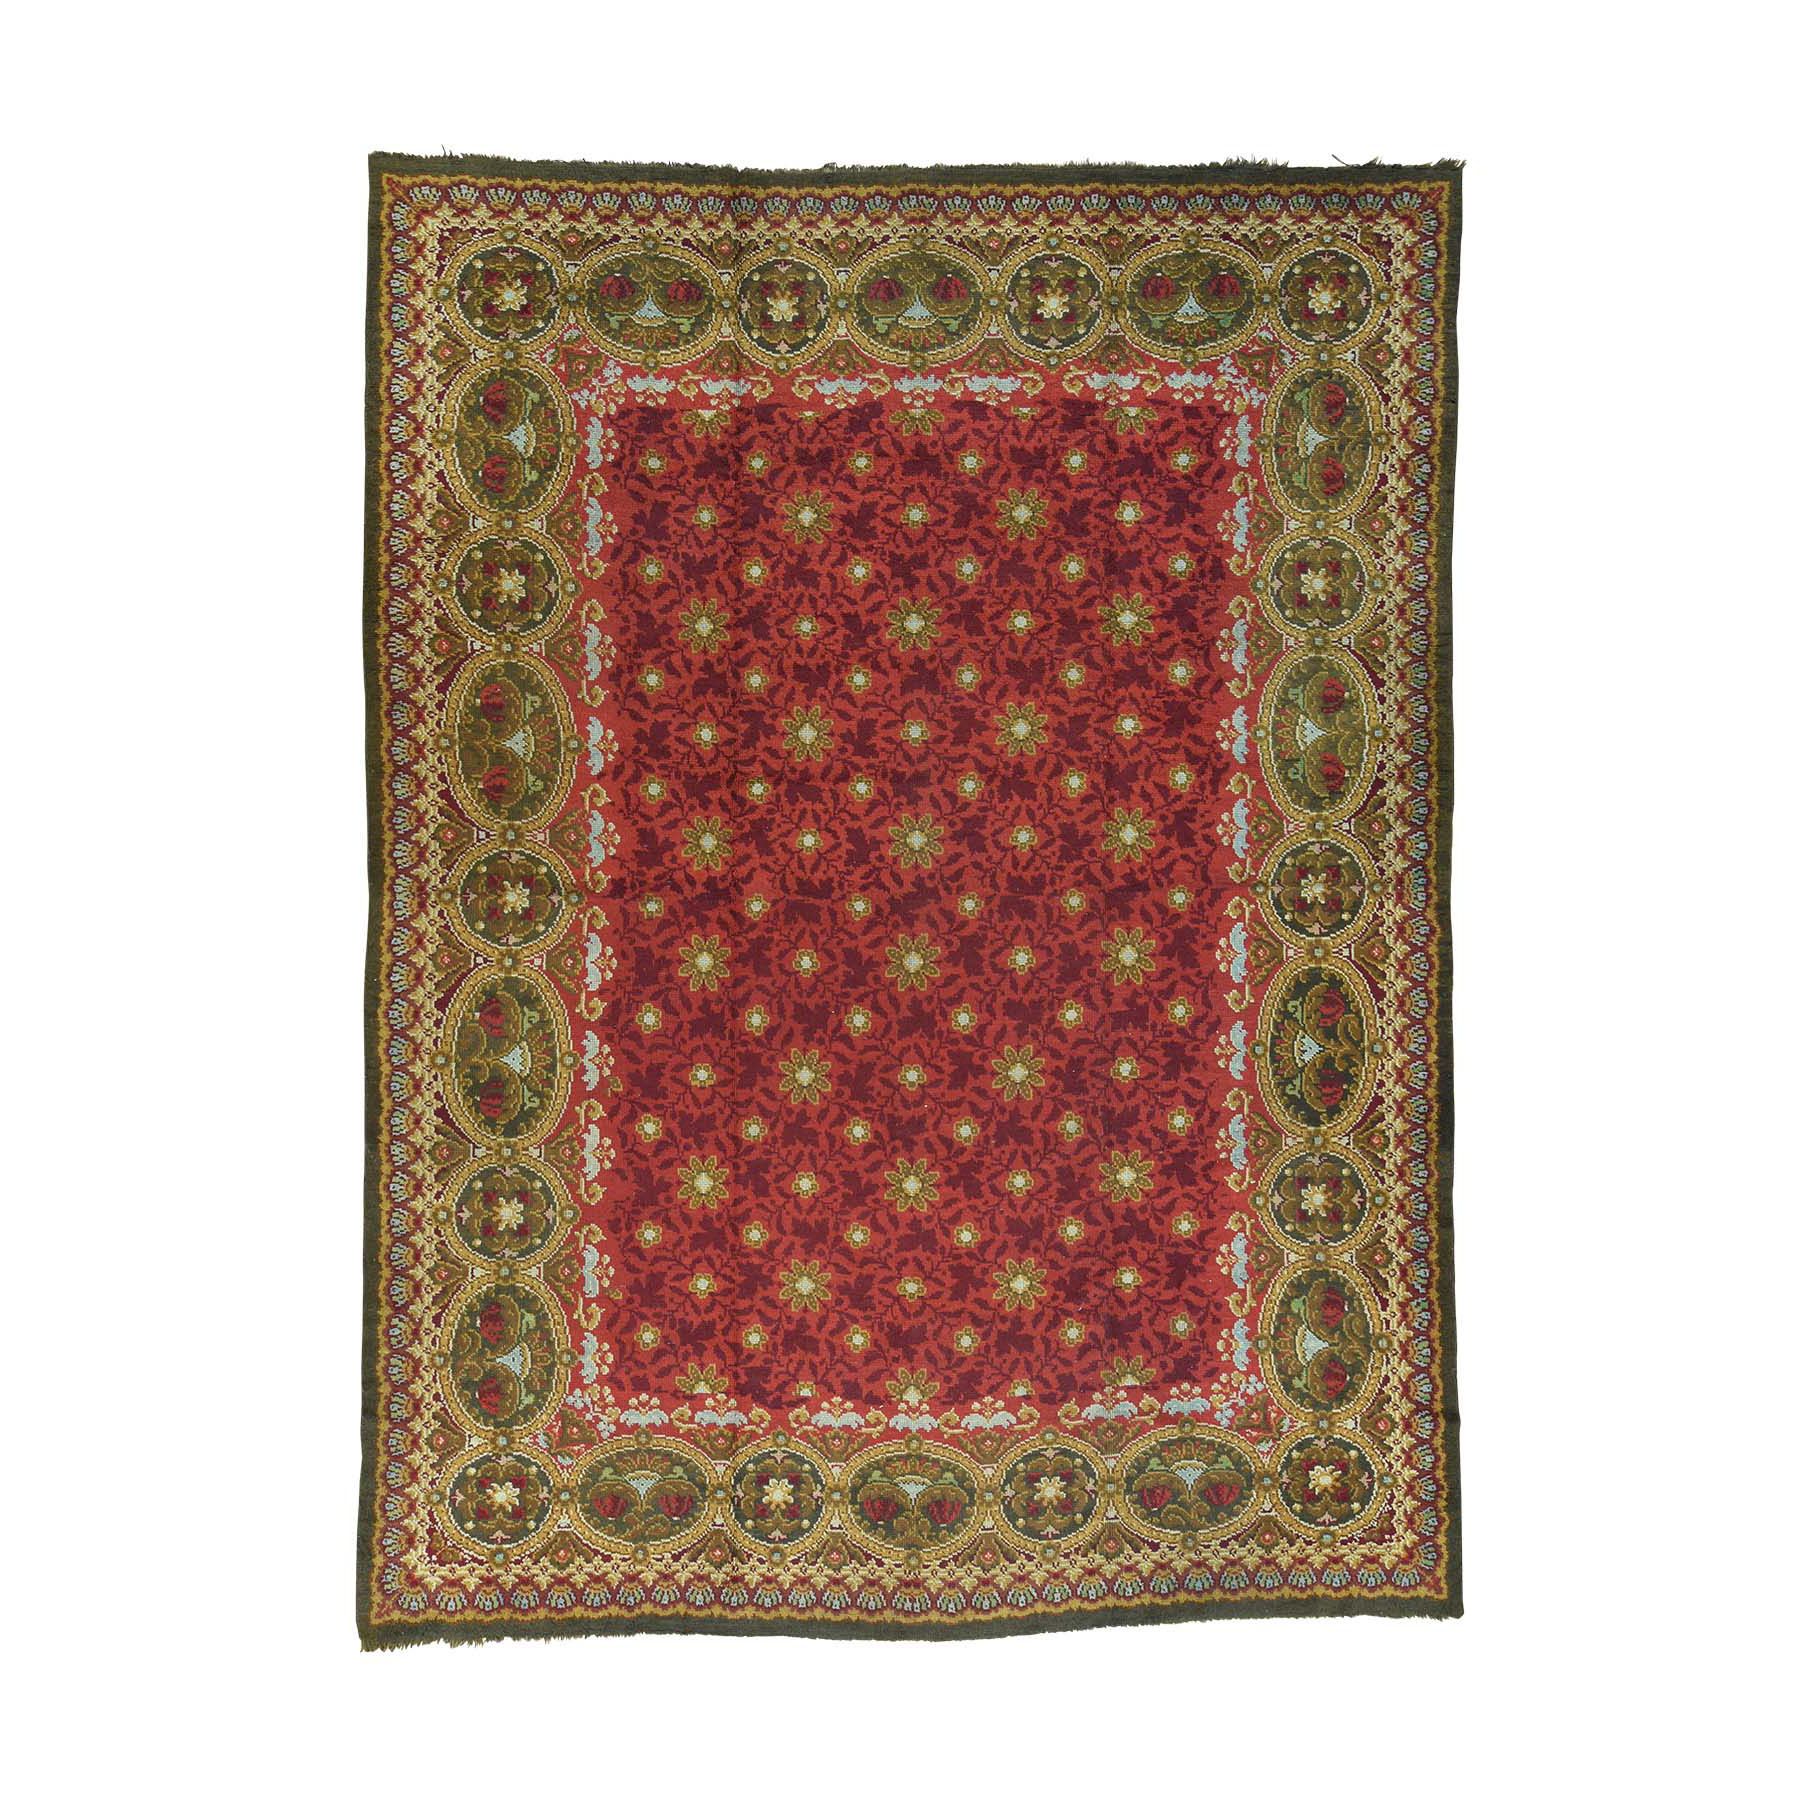 Antique Collection Hand Knotted Red Rug No: 164042